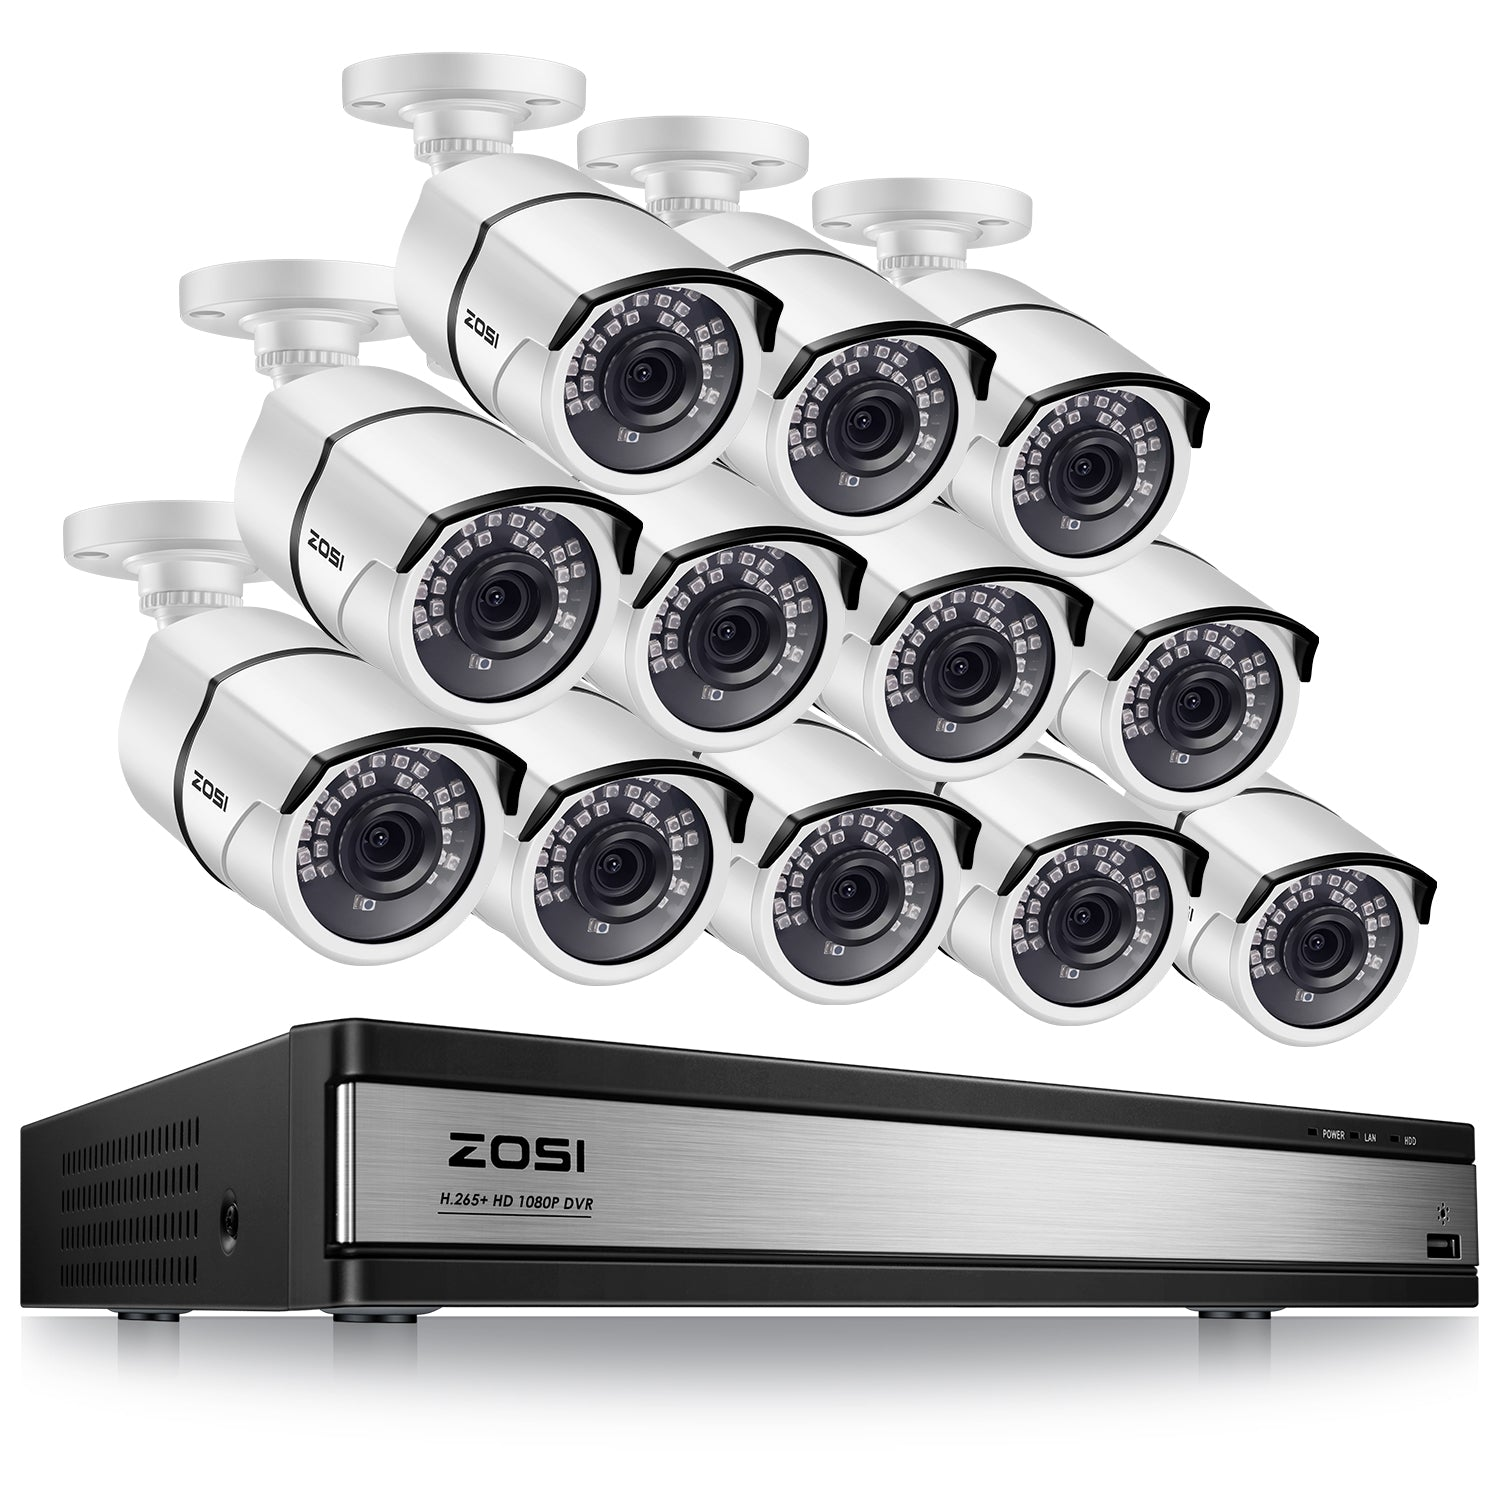 16 Channel Security System, H.265+ Video Compression, 1080P Bullet Cameras, 100ft Night Vision